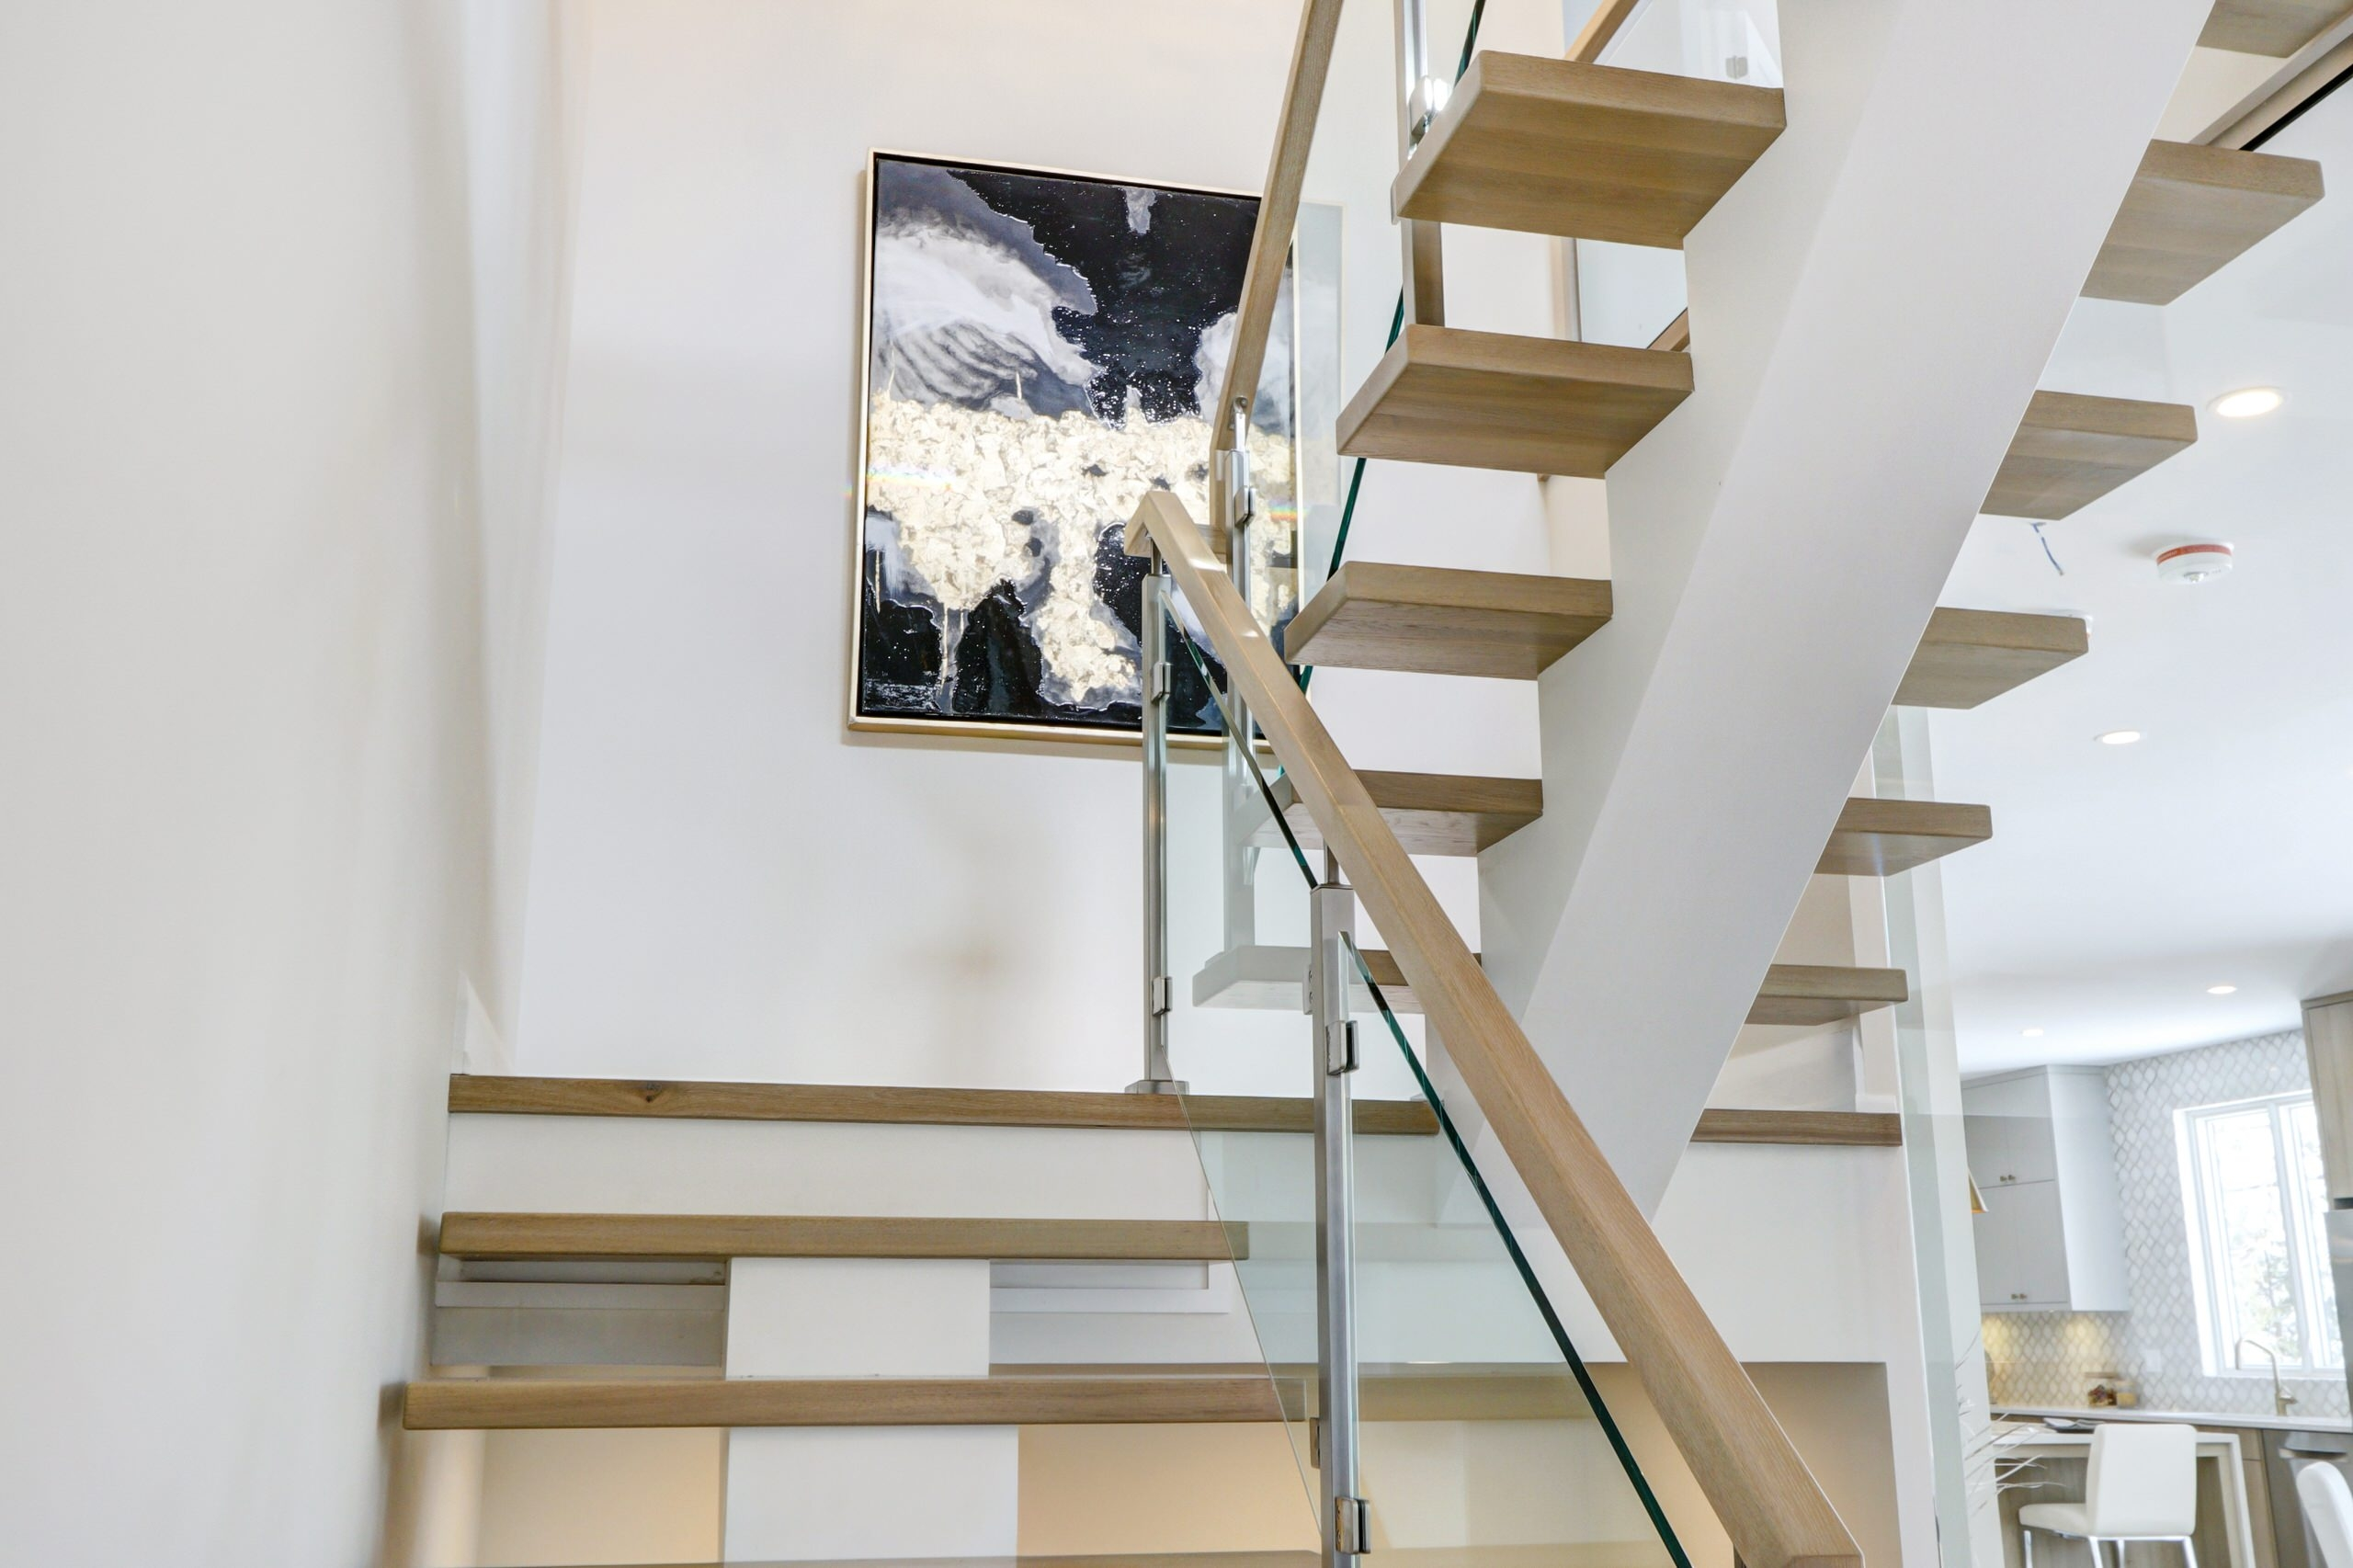 2Nd Floor Landing Staircase Photos Houzz   Stairs To Second Floor Design   Bathroom Next   Space Saving   Square Shaped   Kitchen   Stairway